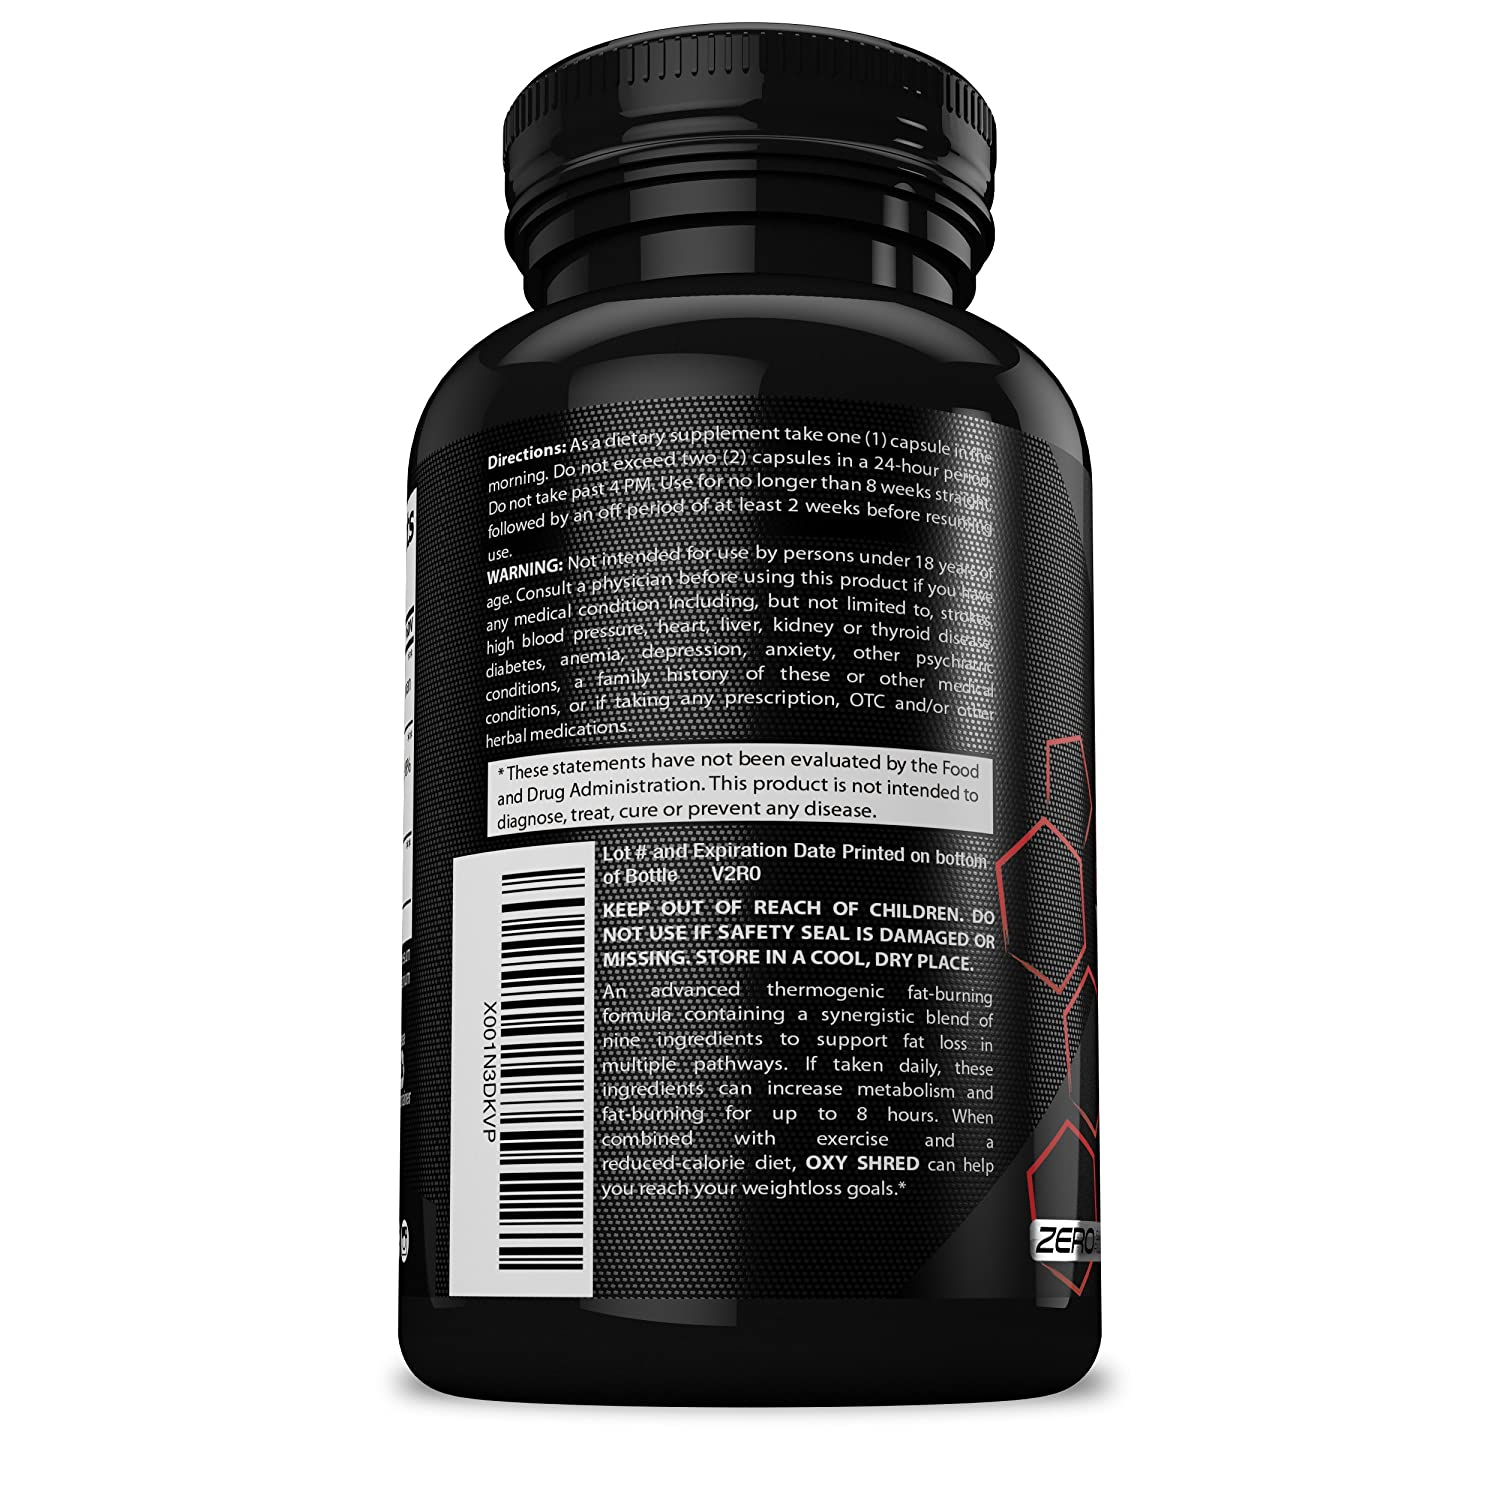 Highmark Nutrition Thermogenic Fat Burner Weight Loss Pills For Women And Men Lose Weight Fast